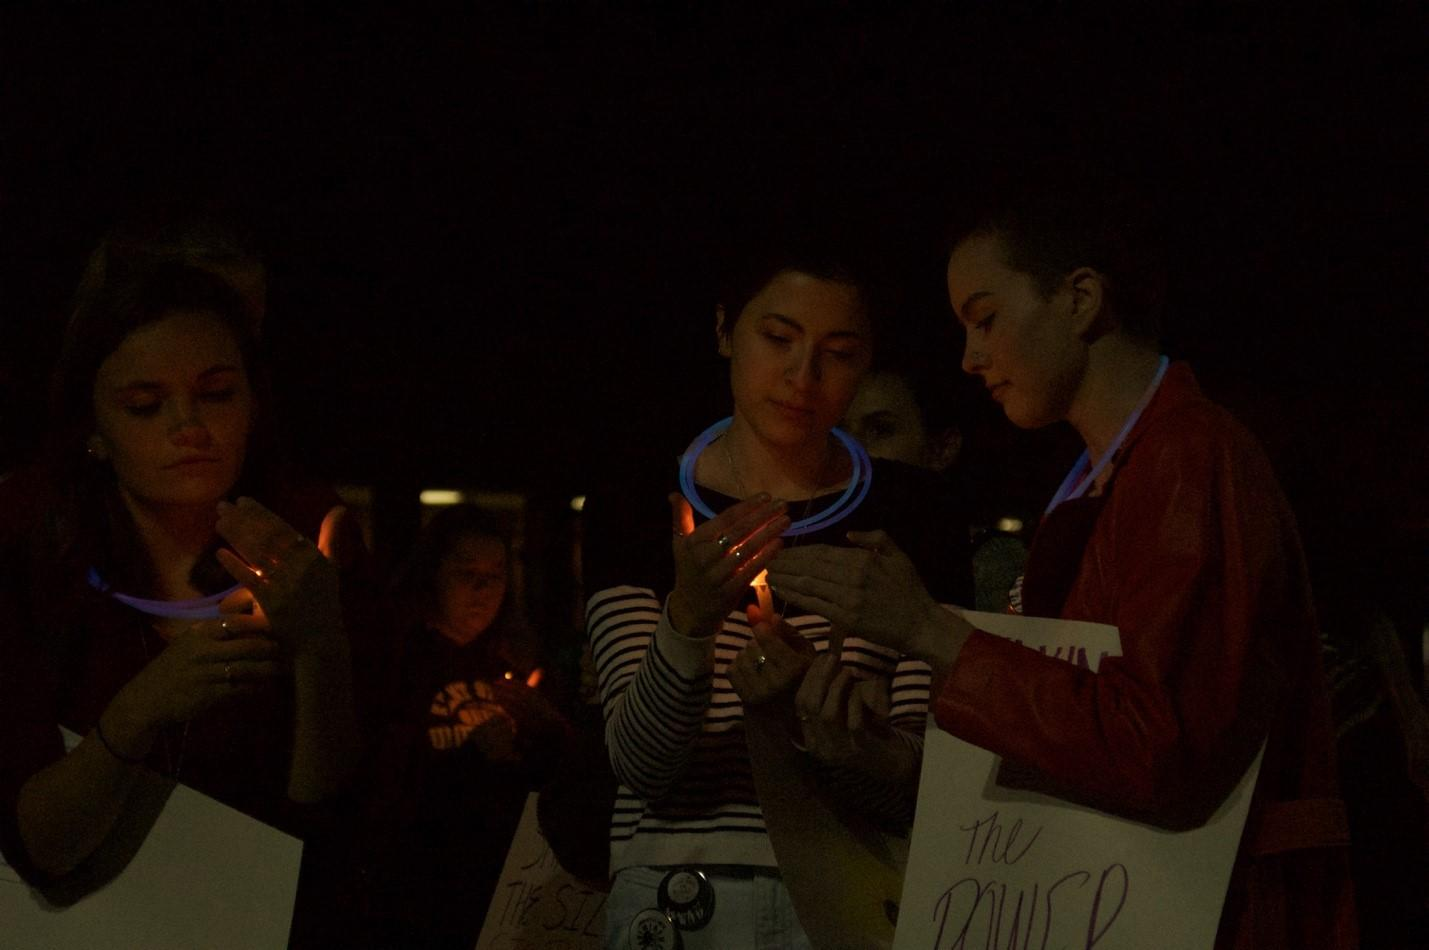 Students hold candles during Take Back the Night, an event held to raise awareness for sexual violence.